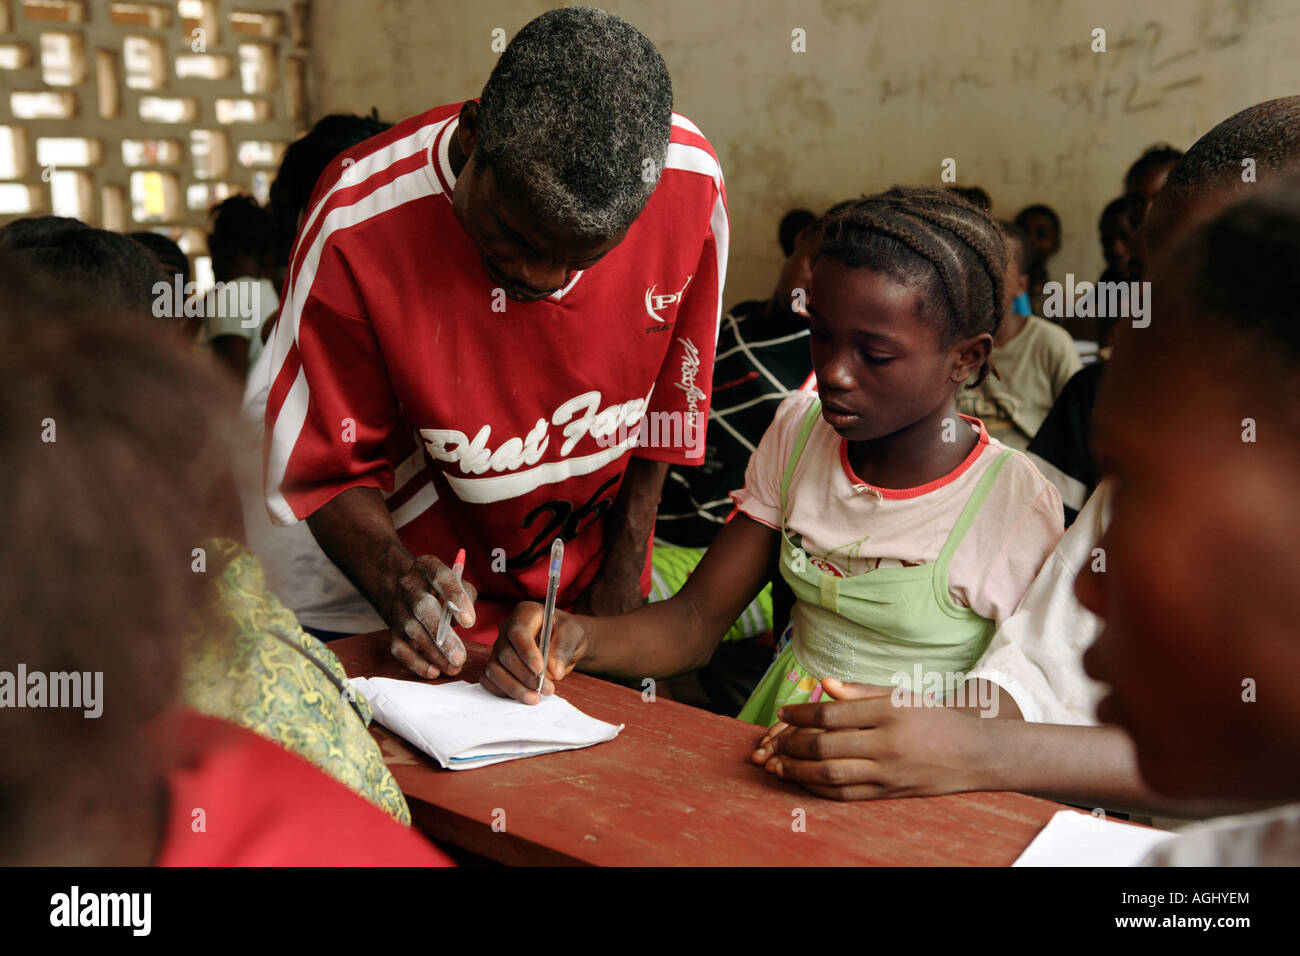 Students on the Accelerated Learning Programme at Zeah Town school which is supported by 'Save the Children' - Stock Image